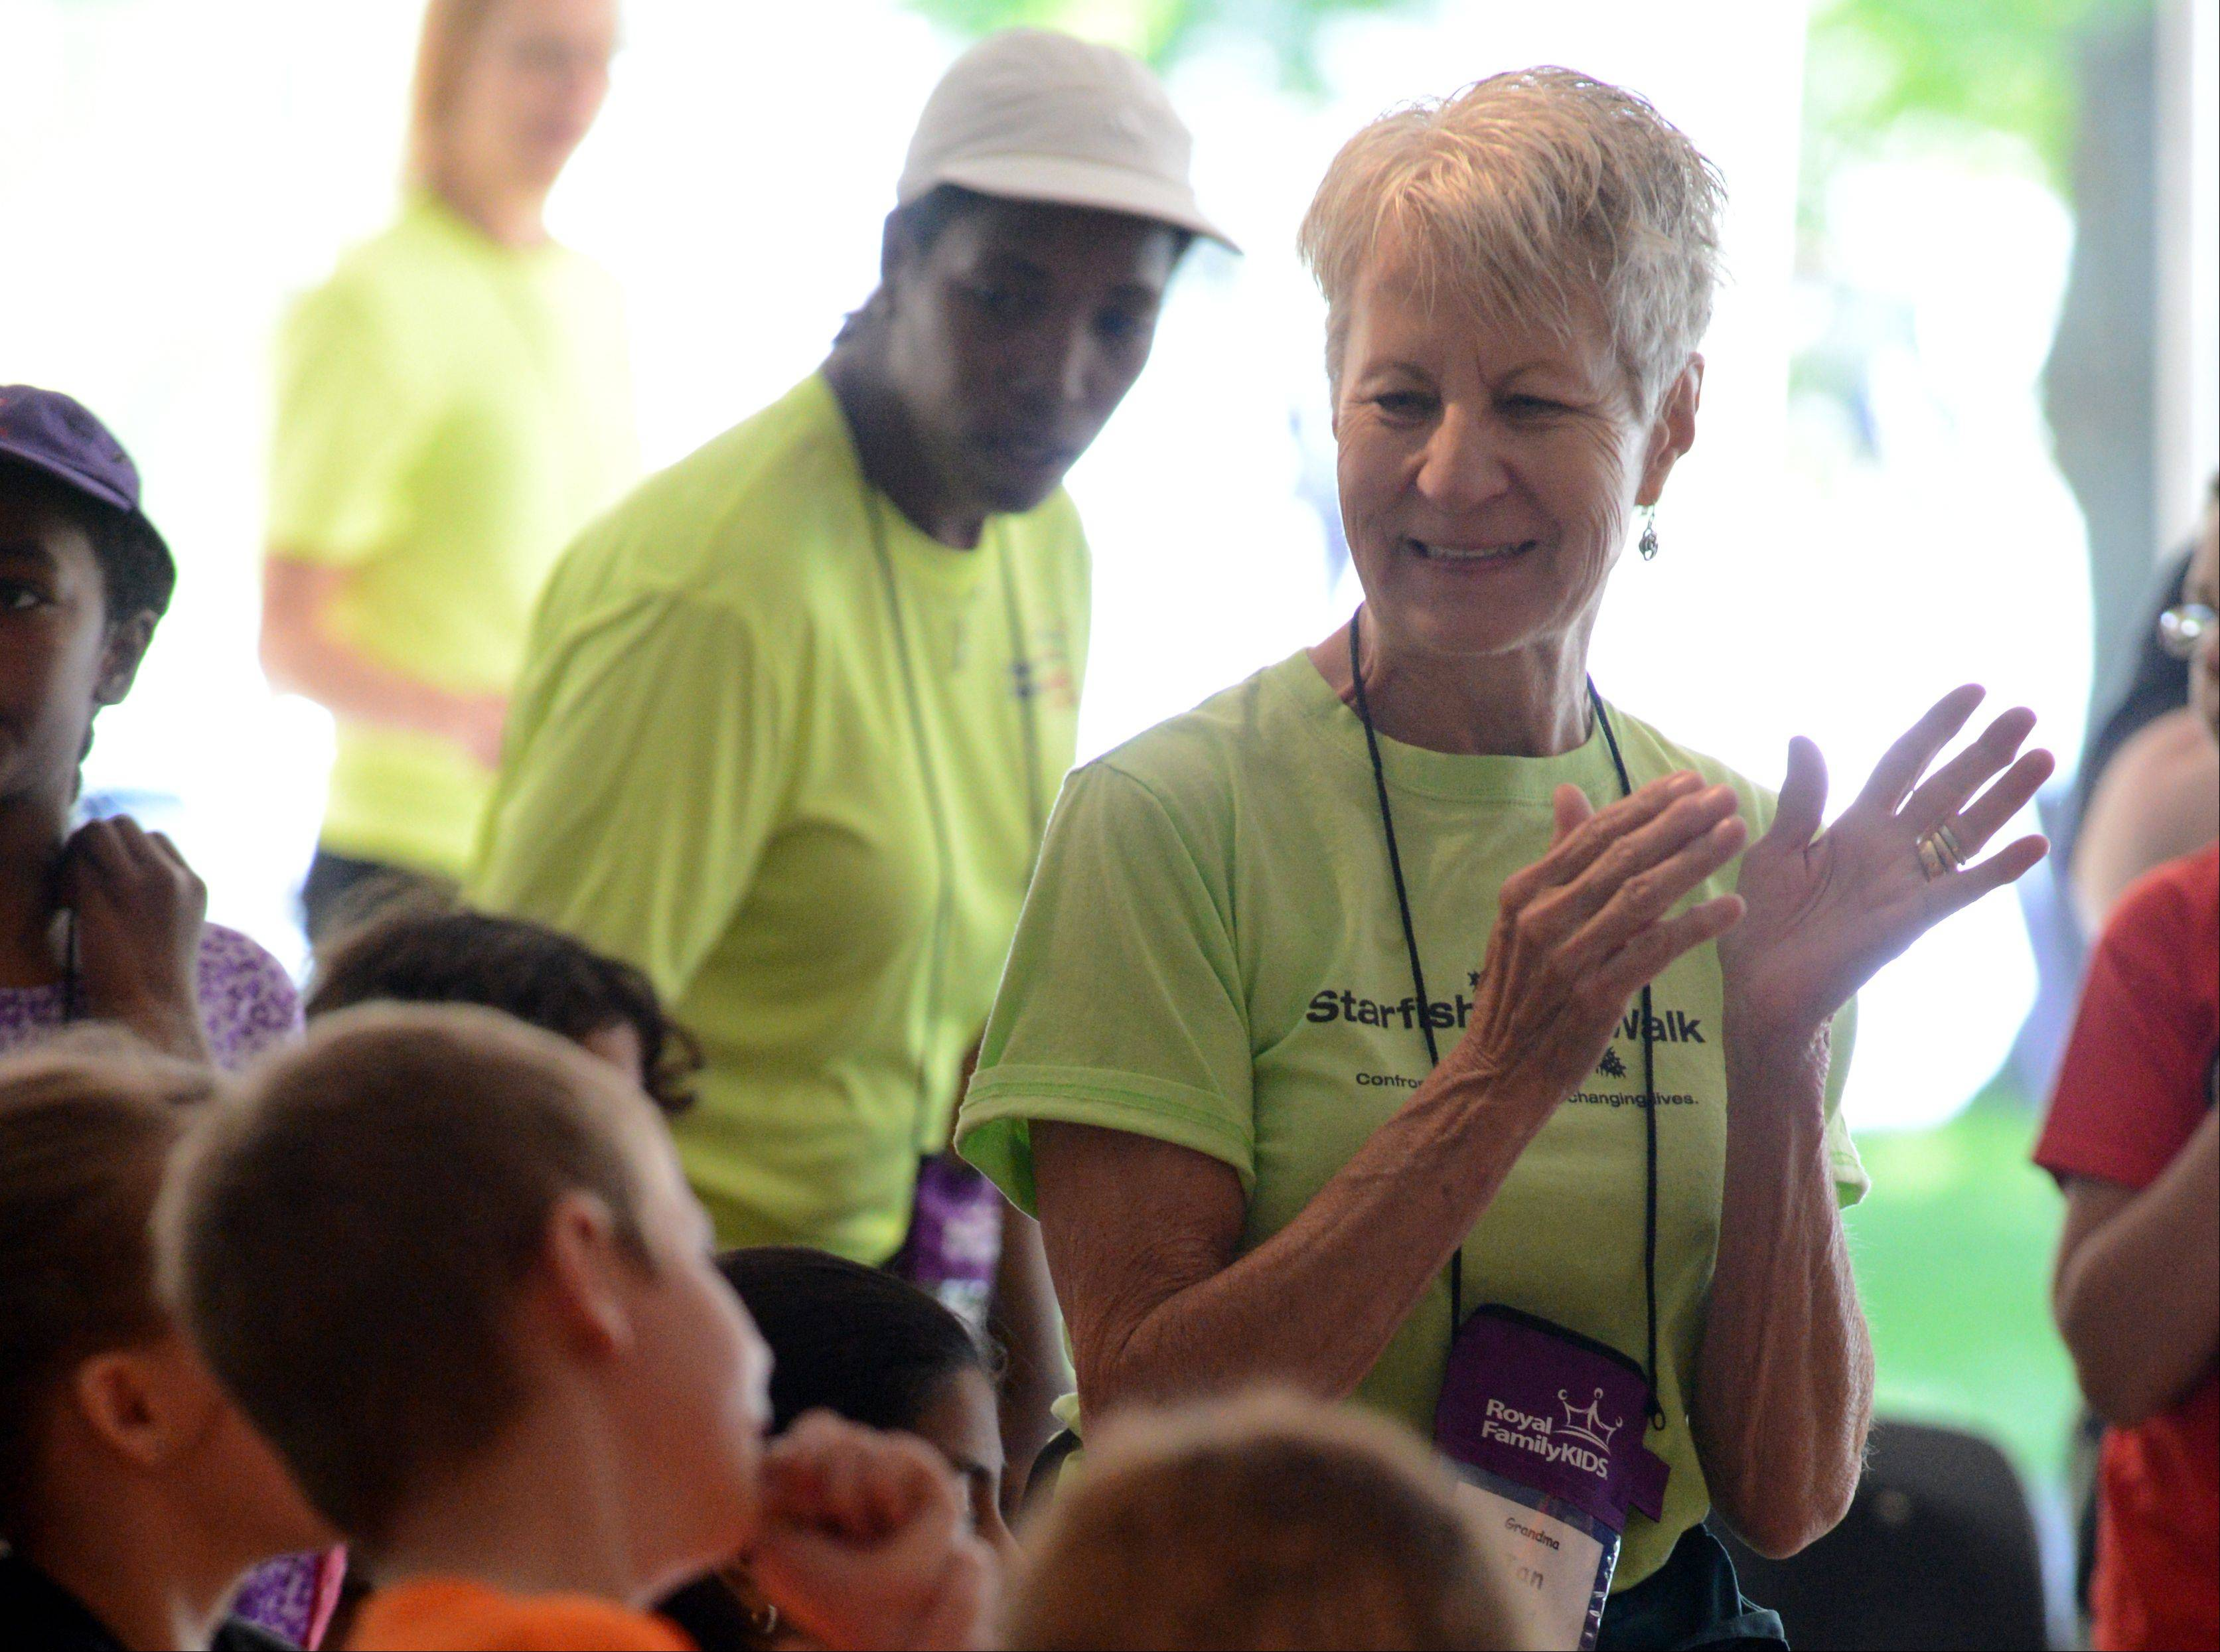 Jan Krueger of Batavia sings with campers during their chapel time at the camp in Wisconsin. Jan and her late husband Bill founded the Geneva Royal Family Kids Camp 10 years ago. The camp is for kids ages 7 to 11 who are in DCFS system. The Geneva group has also started camps for middle school and high school aged kids that have aged out of the earlier camps.